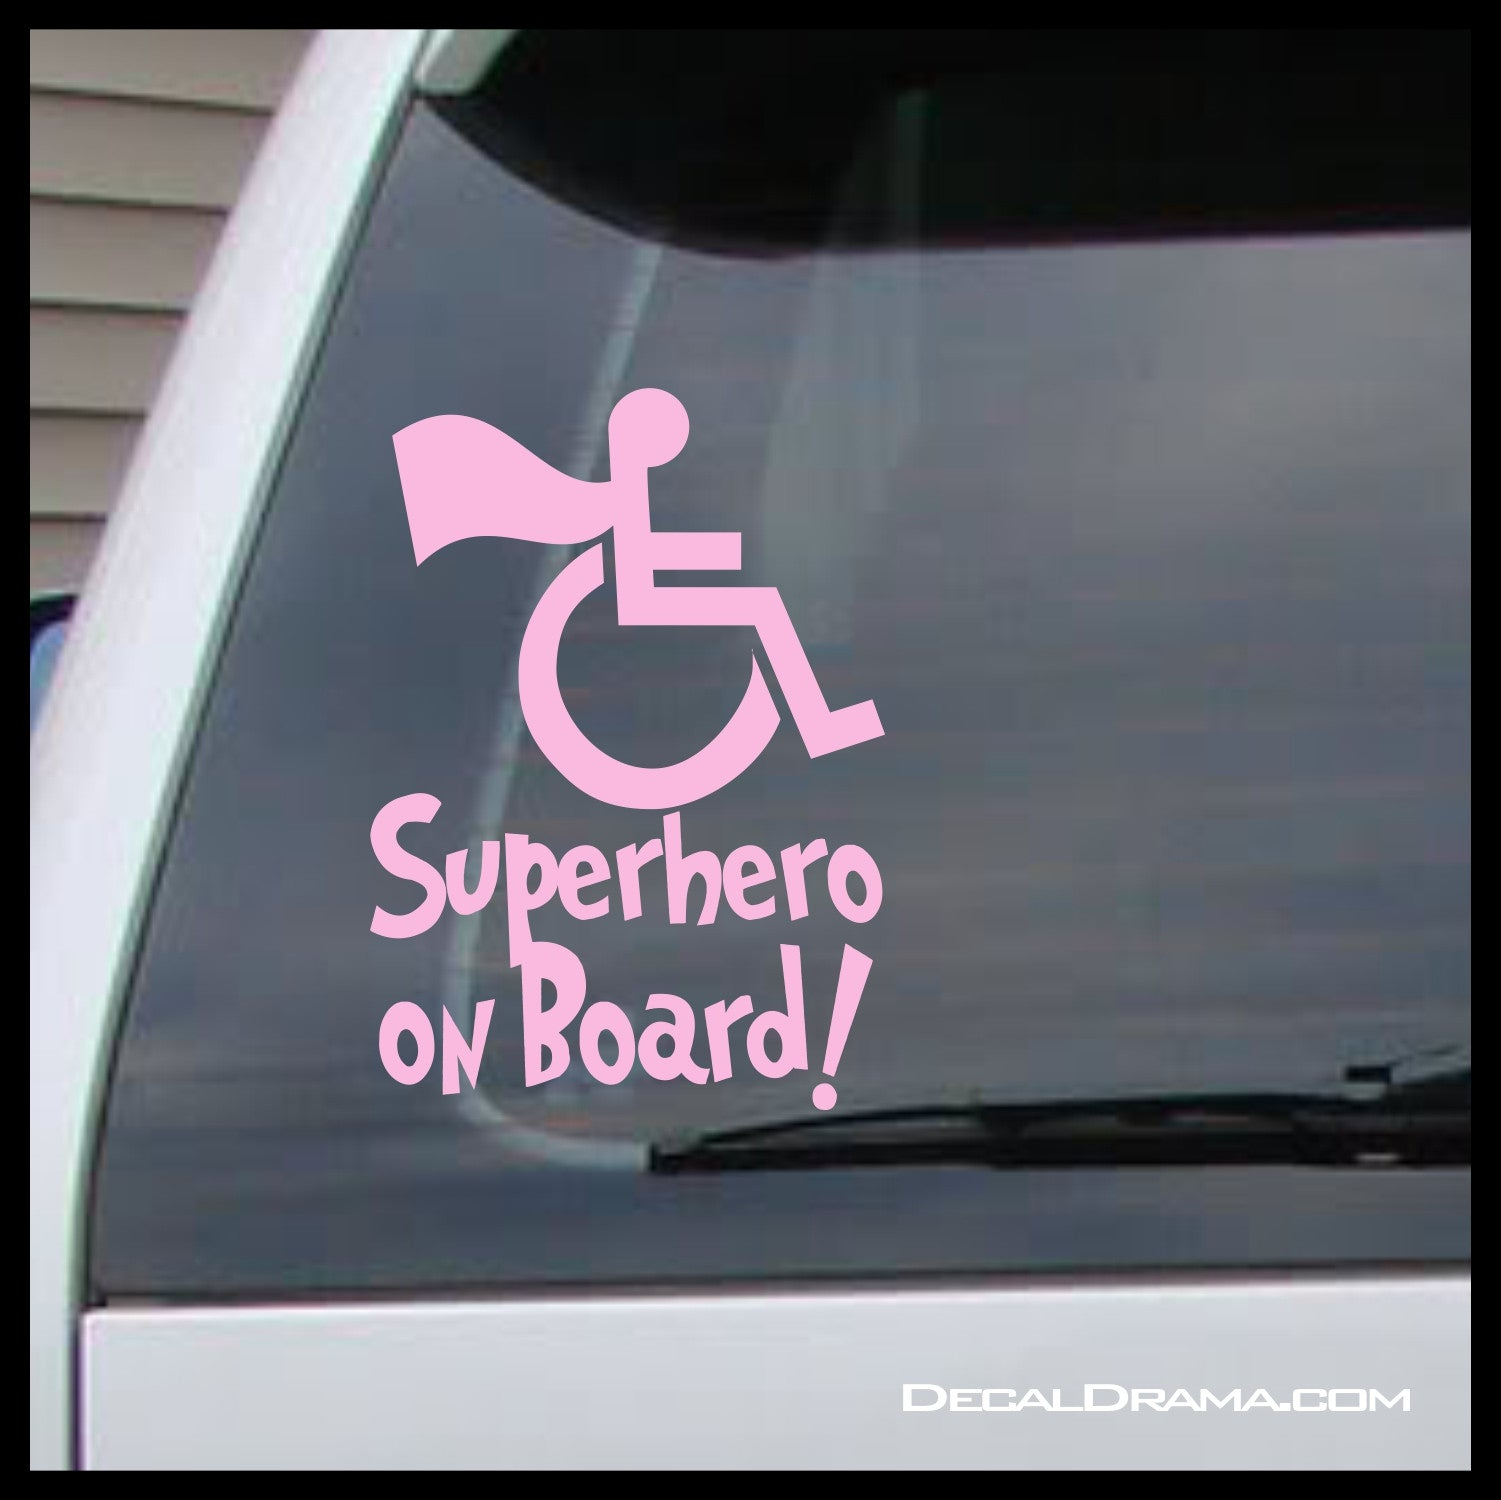 Superhero on Board! Vinyl Car/Laptop Decal